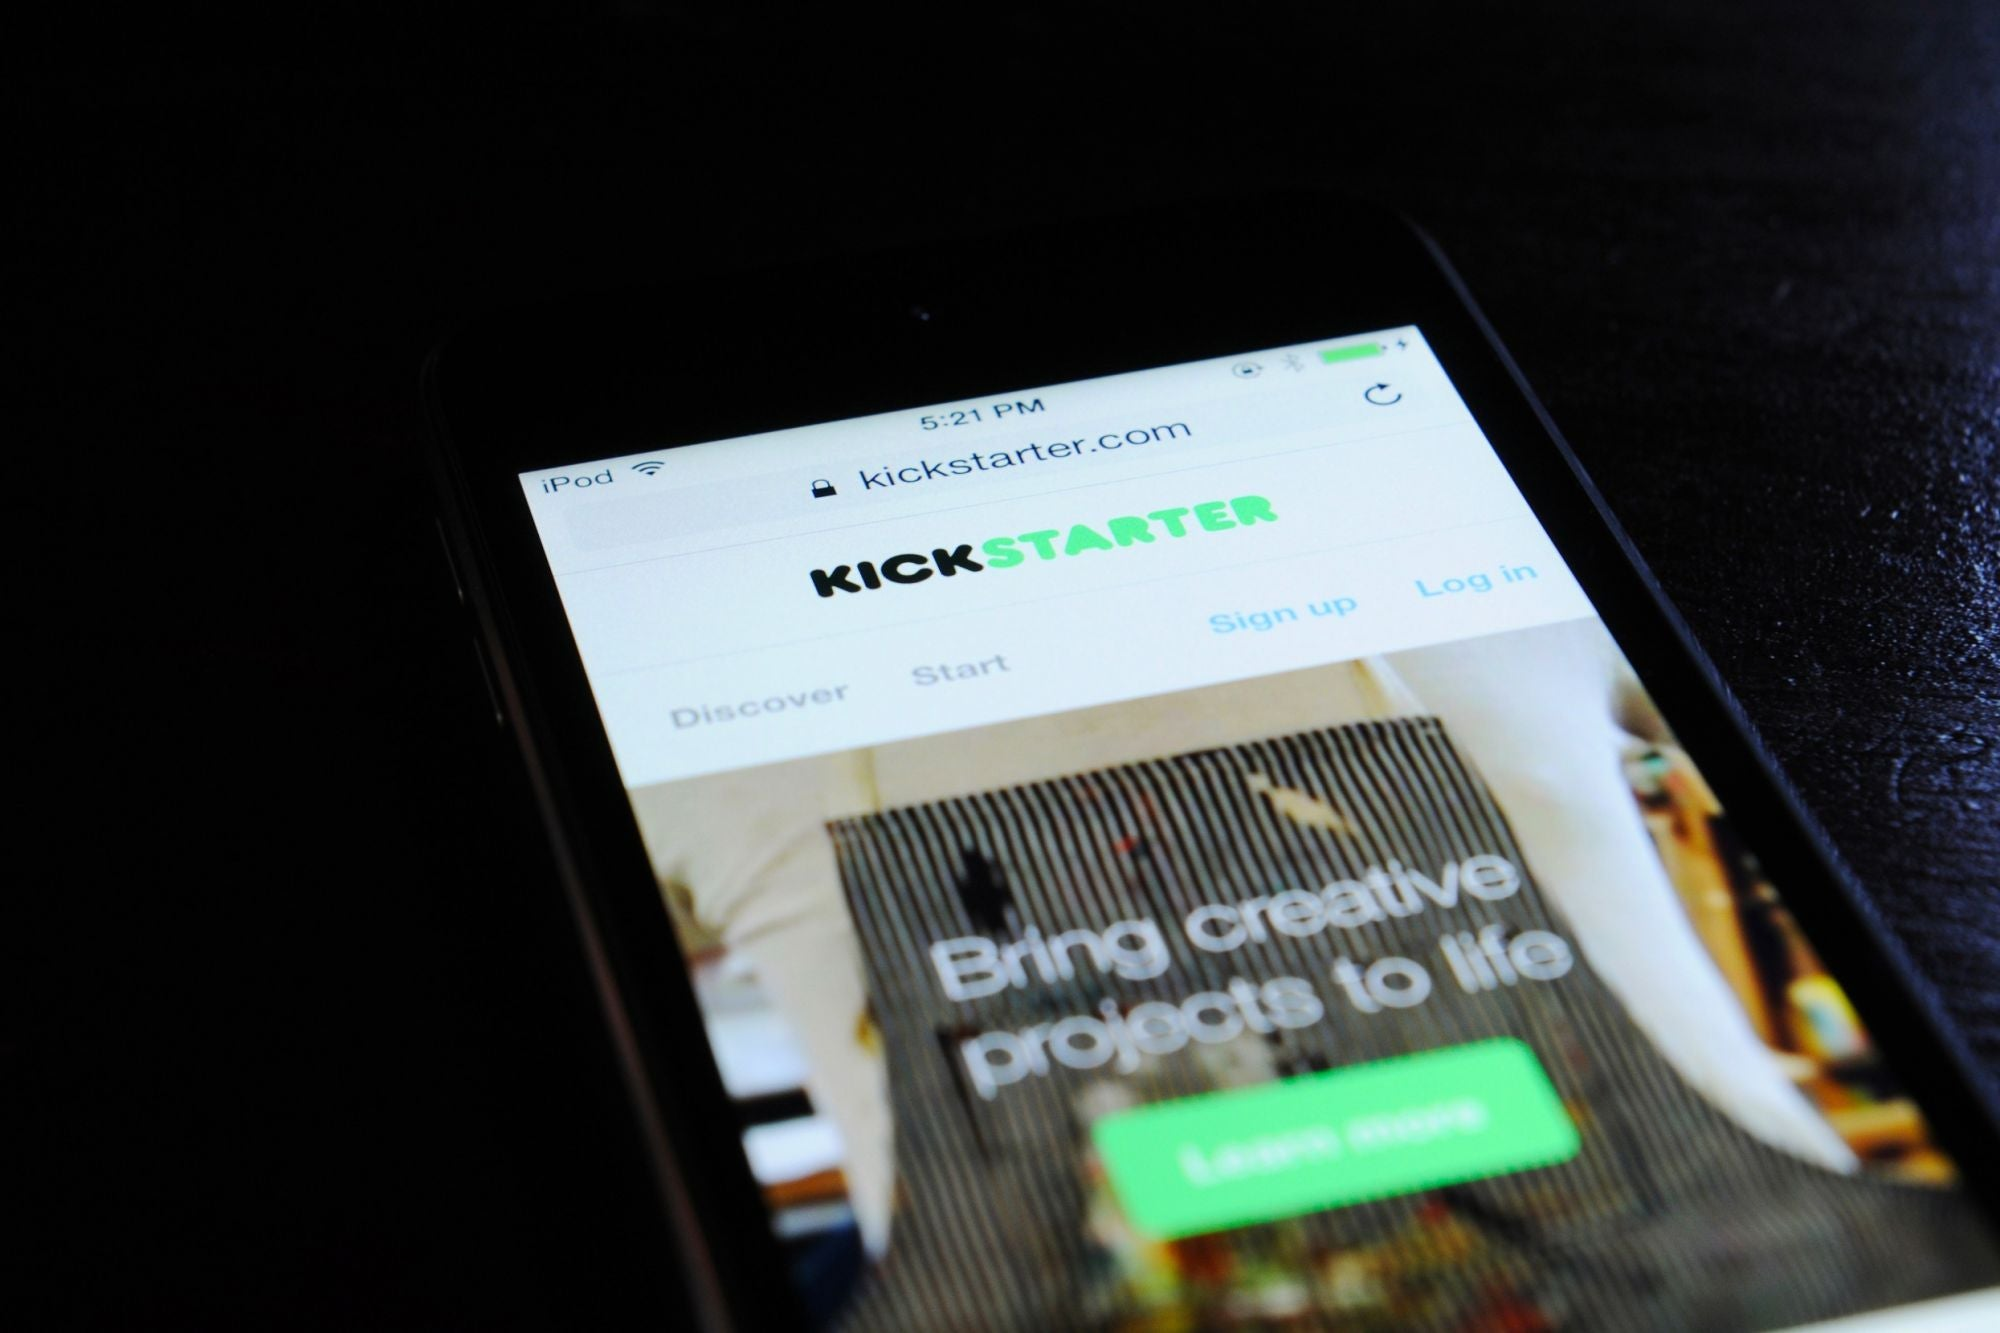 Kickstarter's Live Project Count Is Down 35 Percent From Last Year